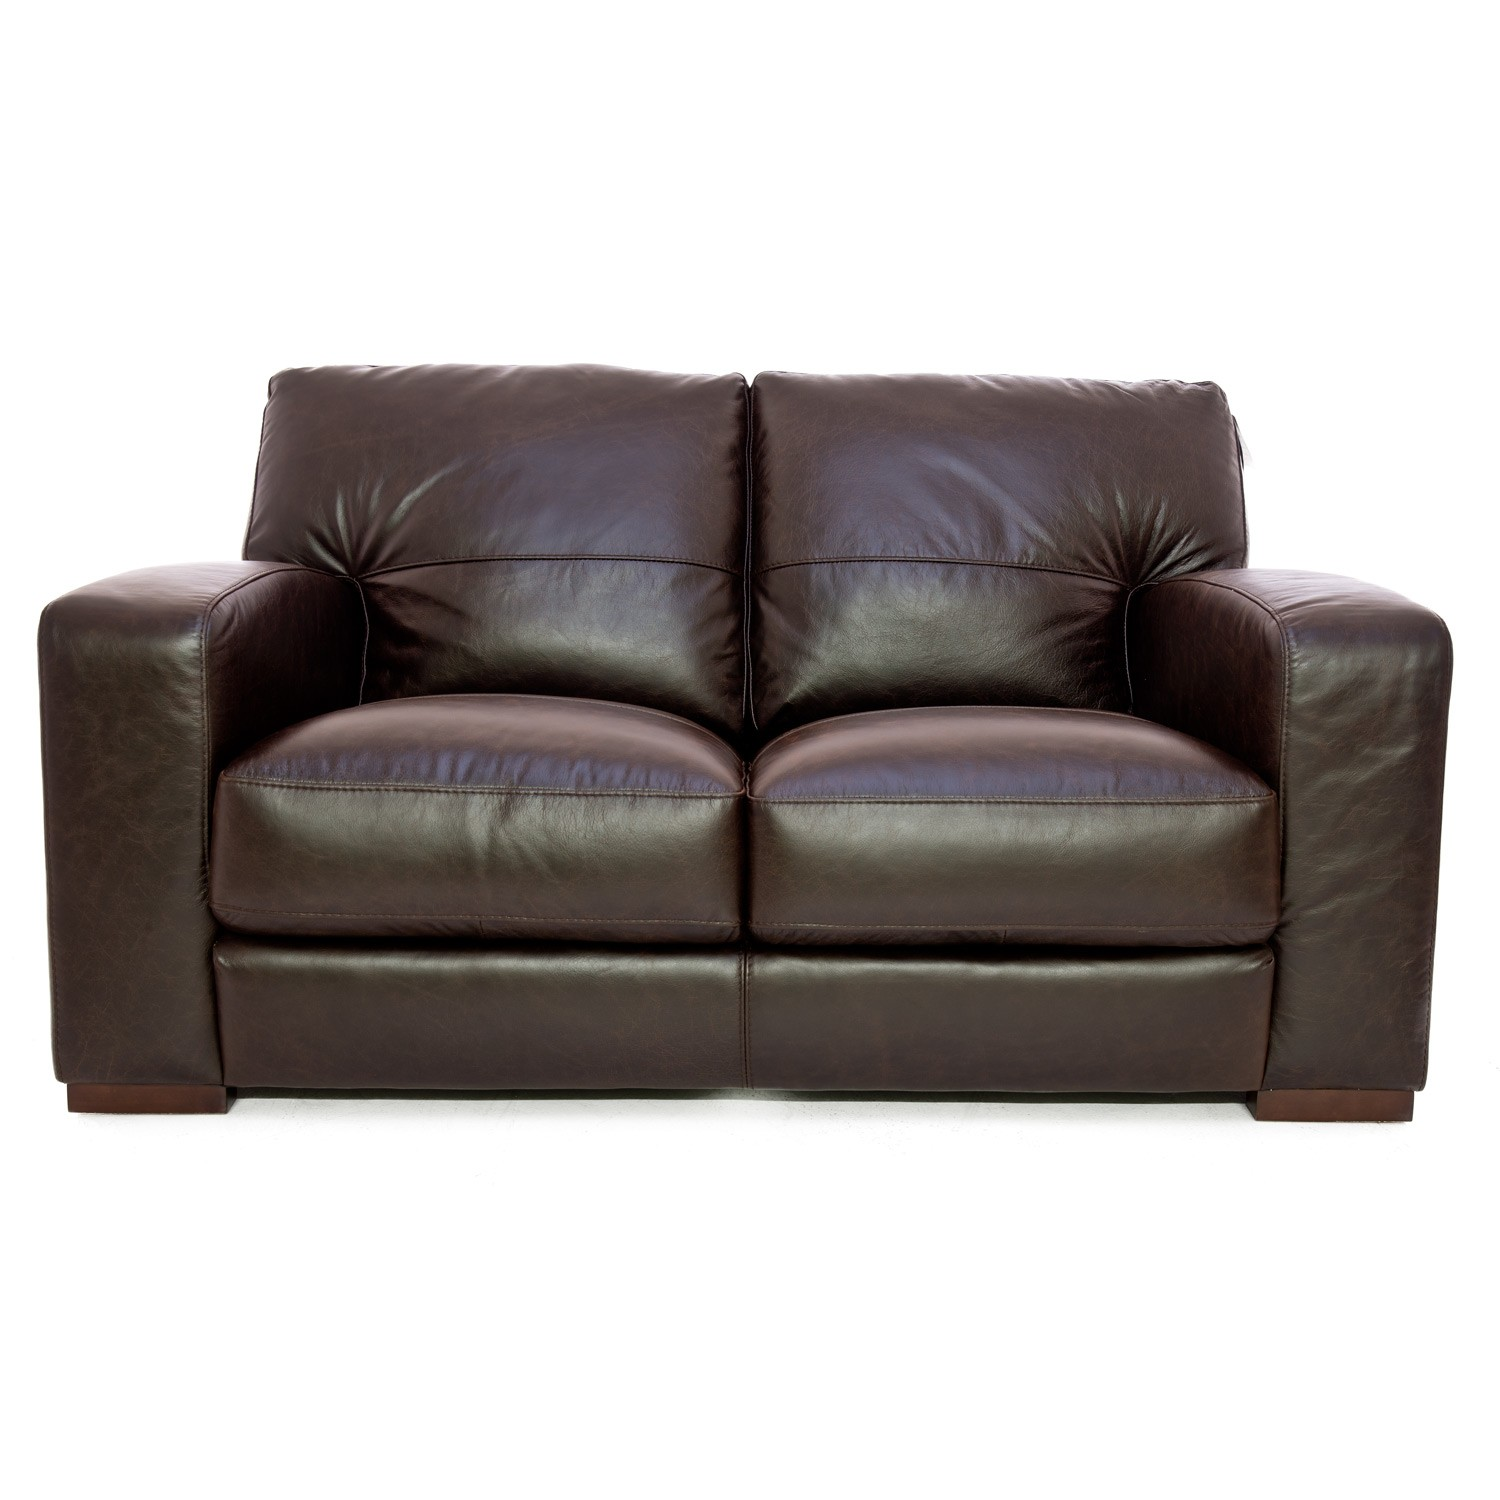 Casa walt 2 seater sofa leekes for Sofa 8 seater